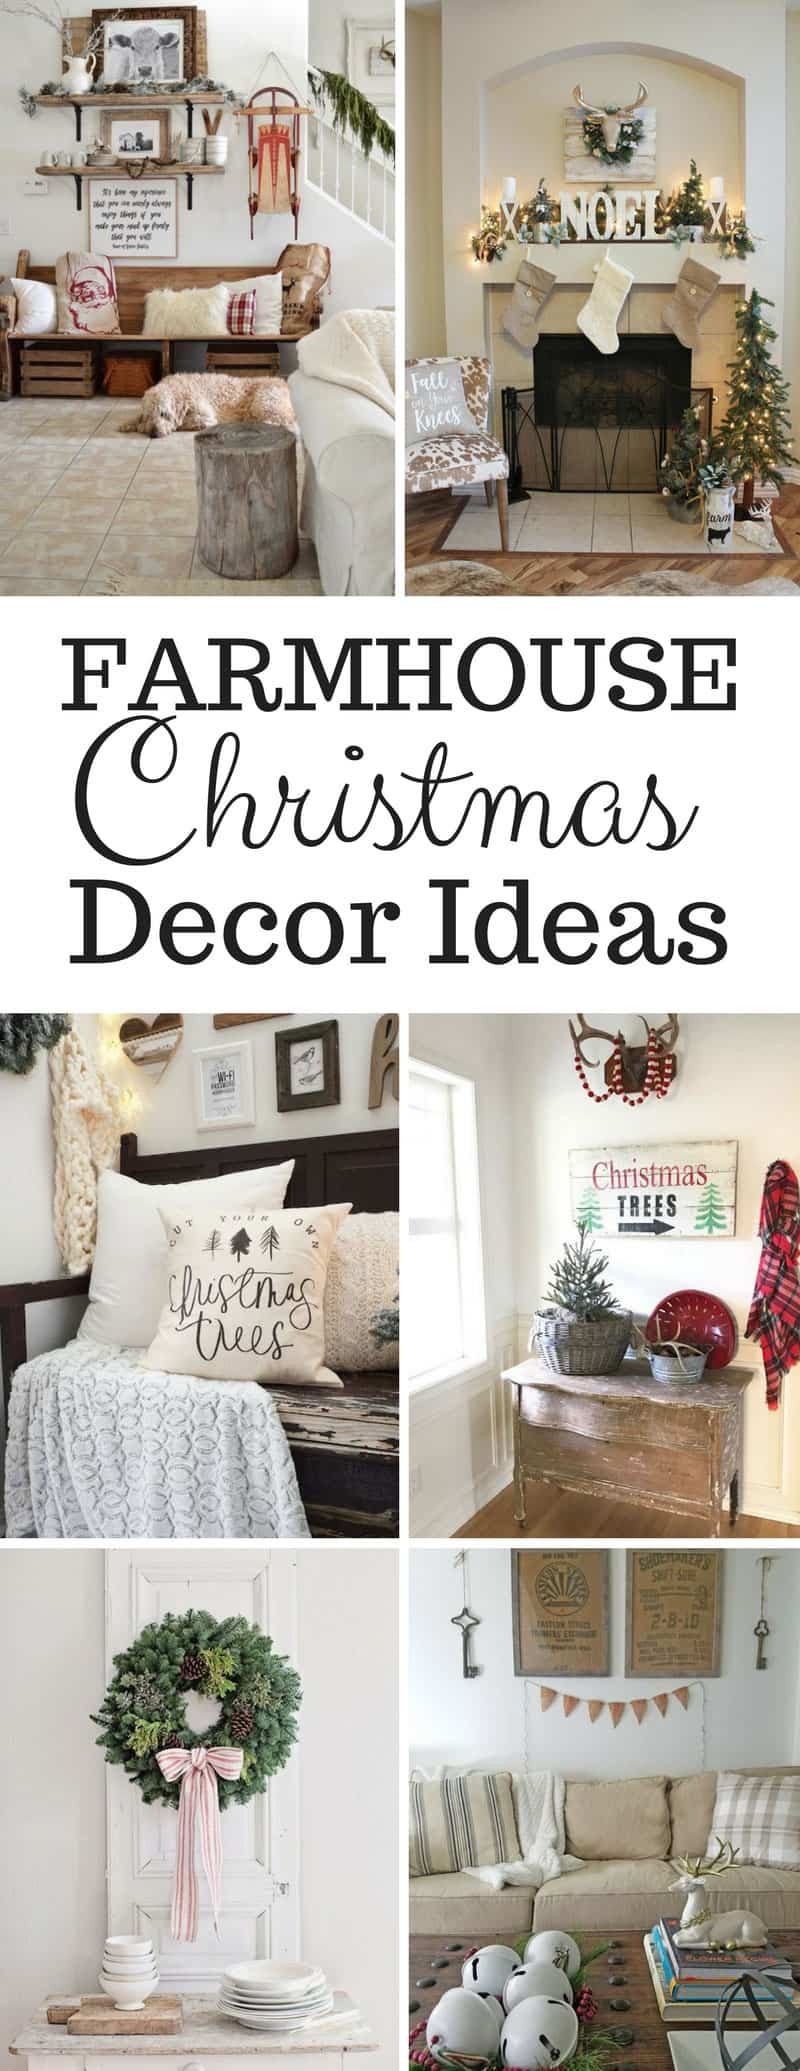 farmhouse christmas decor ideas channel your inner joanna gaines with these wonderful farmhouse christmas decor